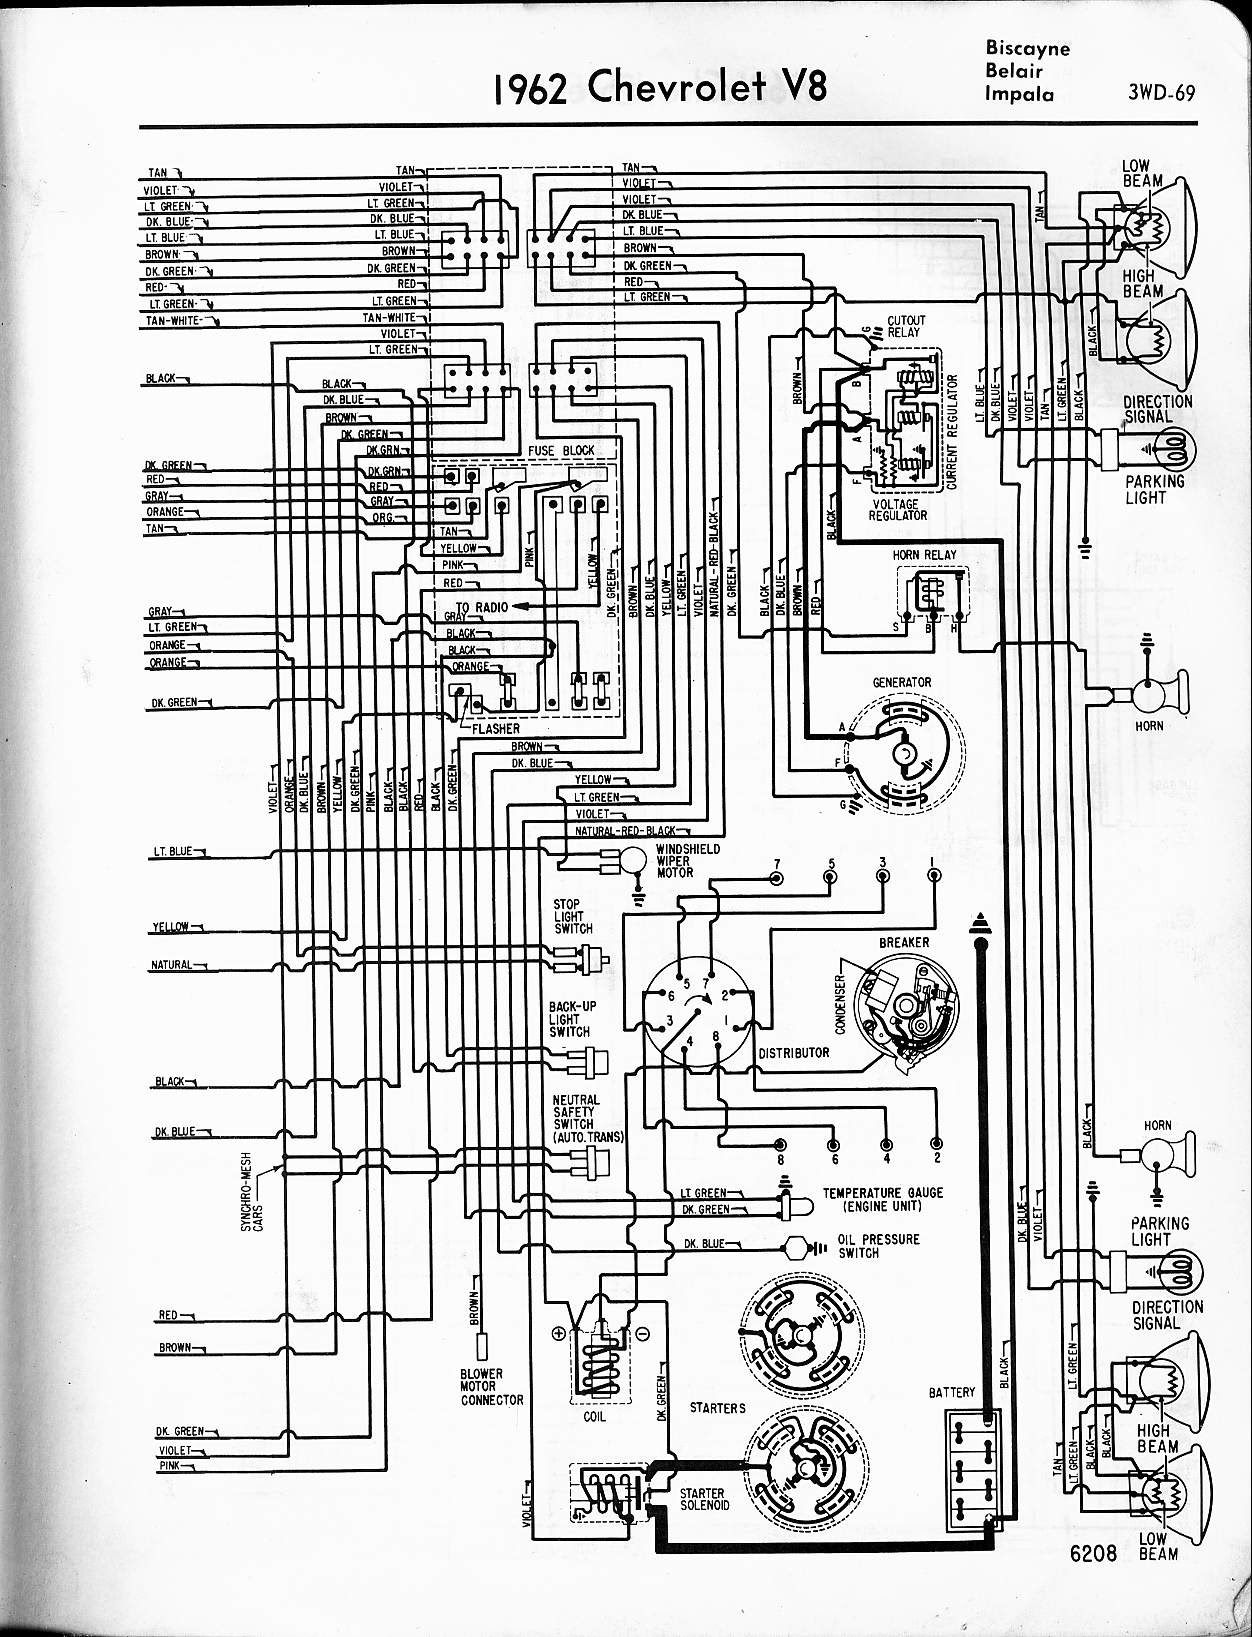 650 2003 Chevy Impala Fuse Box Location Wiring Diagram Library